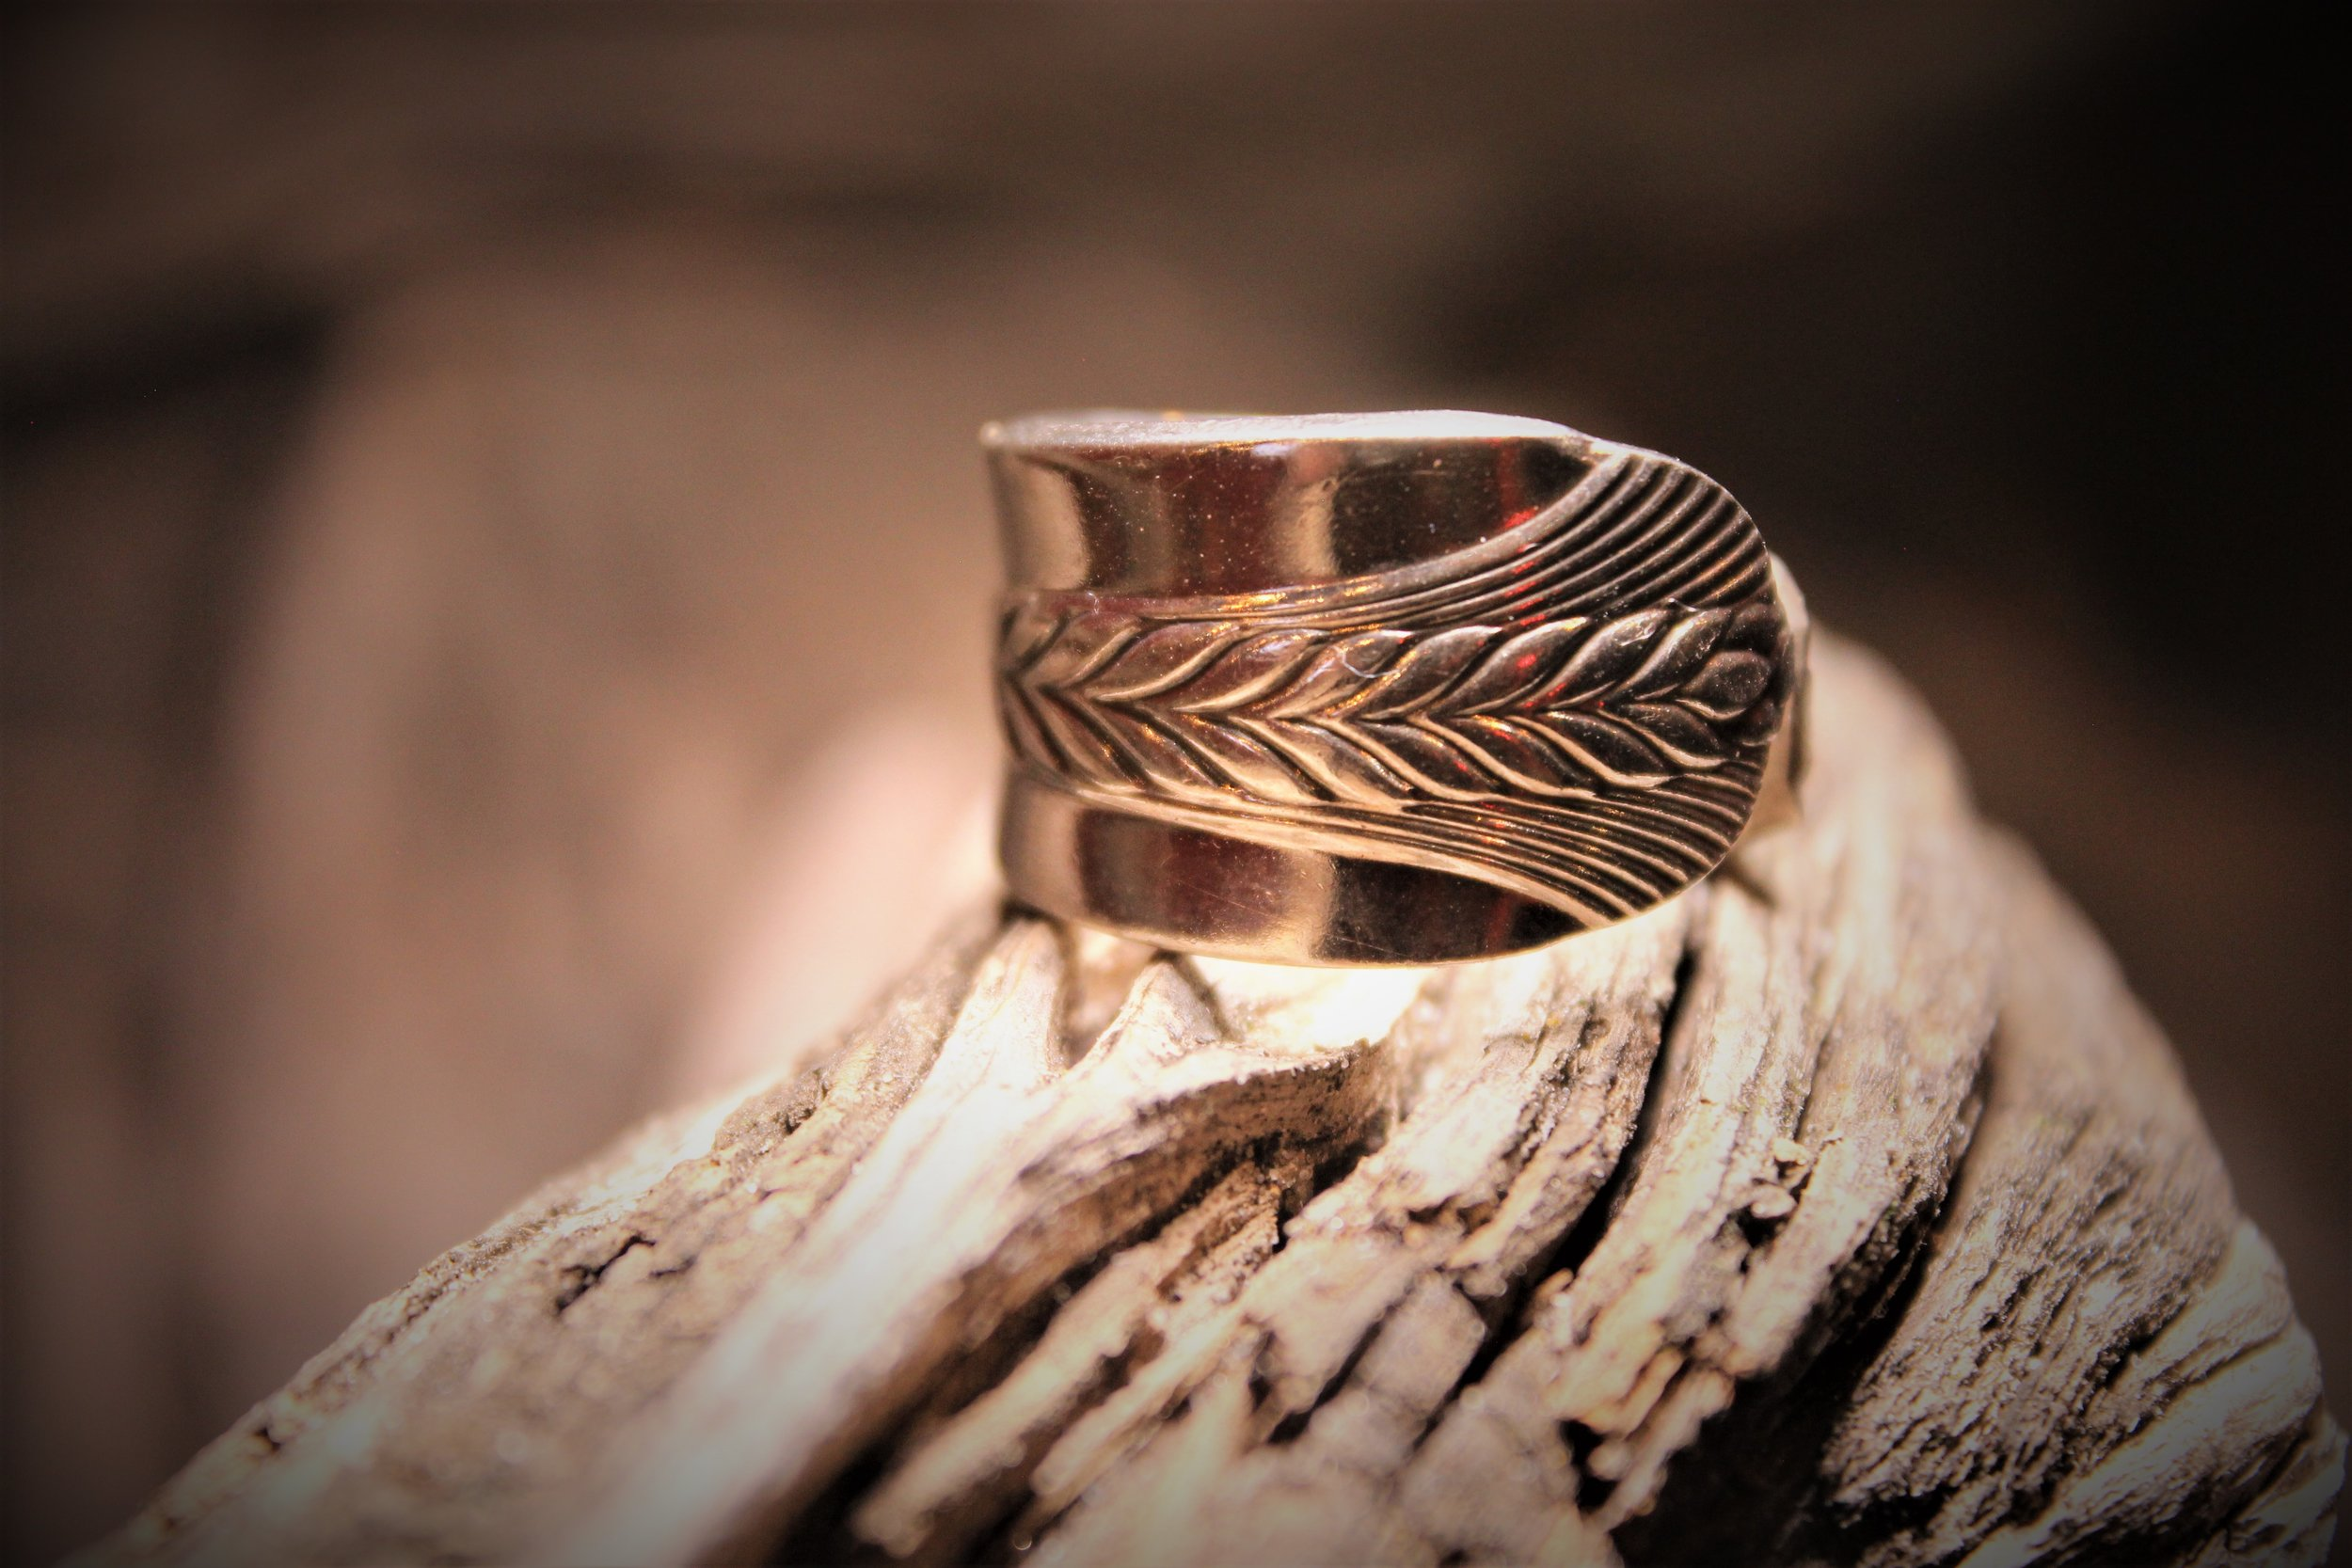 RINGS - Whether you are looking for a simply styled sterling silver plated ringcreated from vintage silverware,or a wedding band stampedwith a loved ones name, we can createa piece that is special and unique.